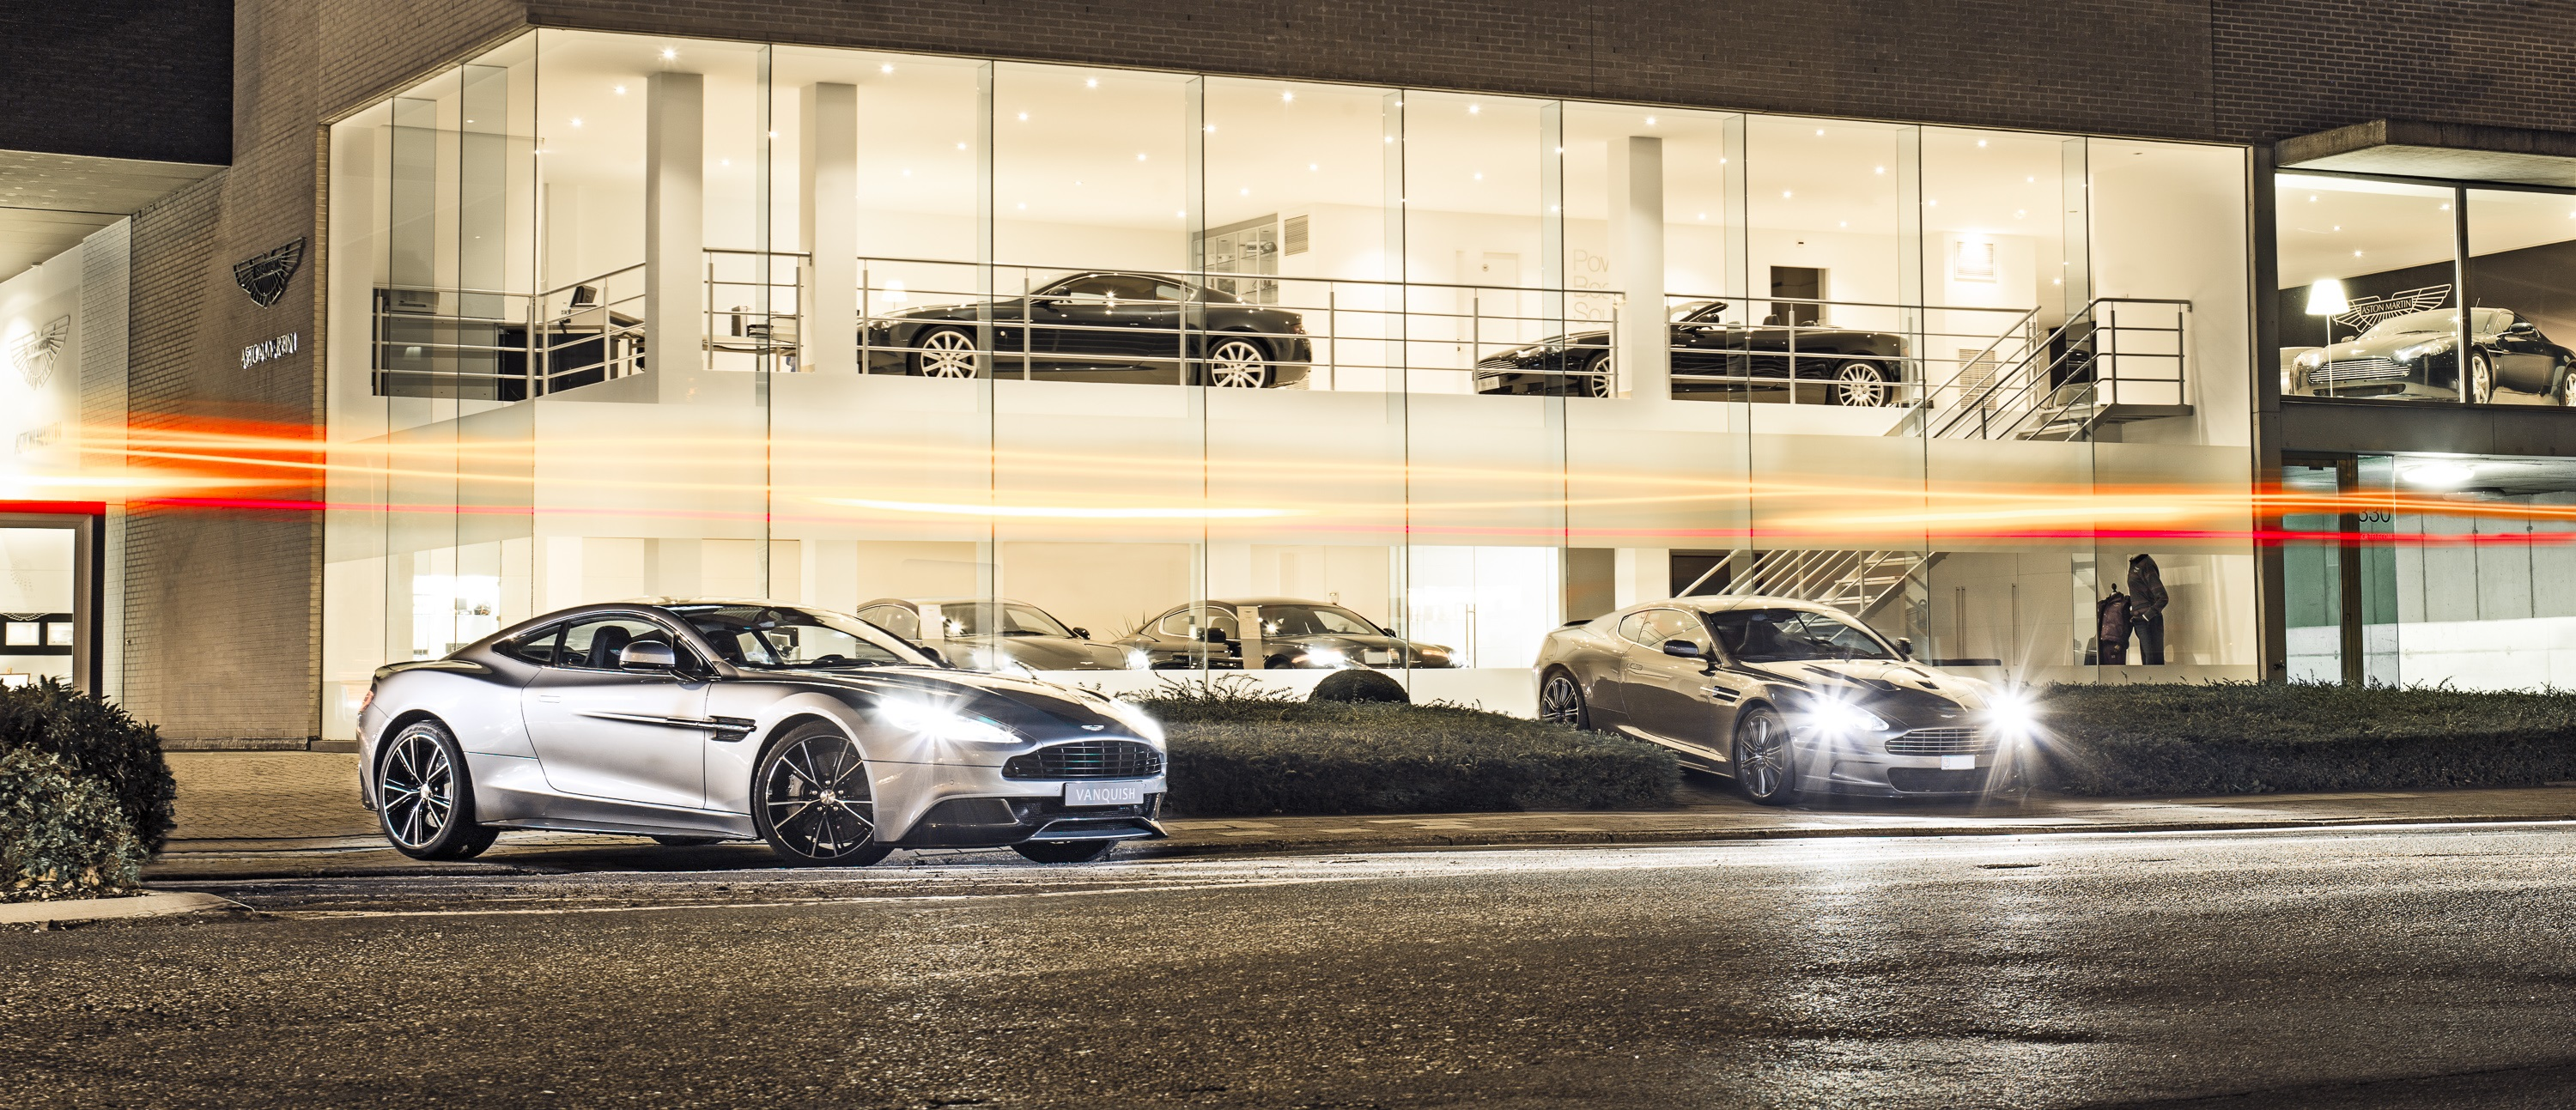 About Us Aston Martin Antwerp Official Aston Martin Dealer - Aston martin dealerships